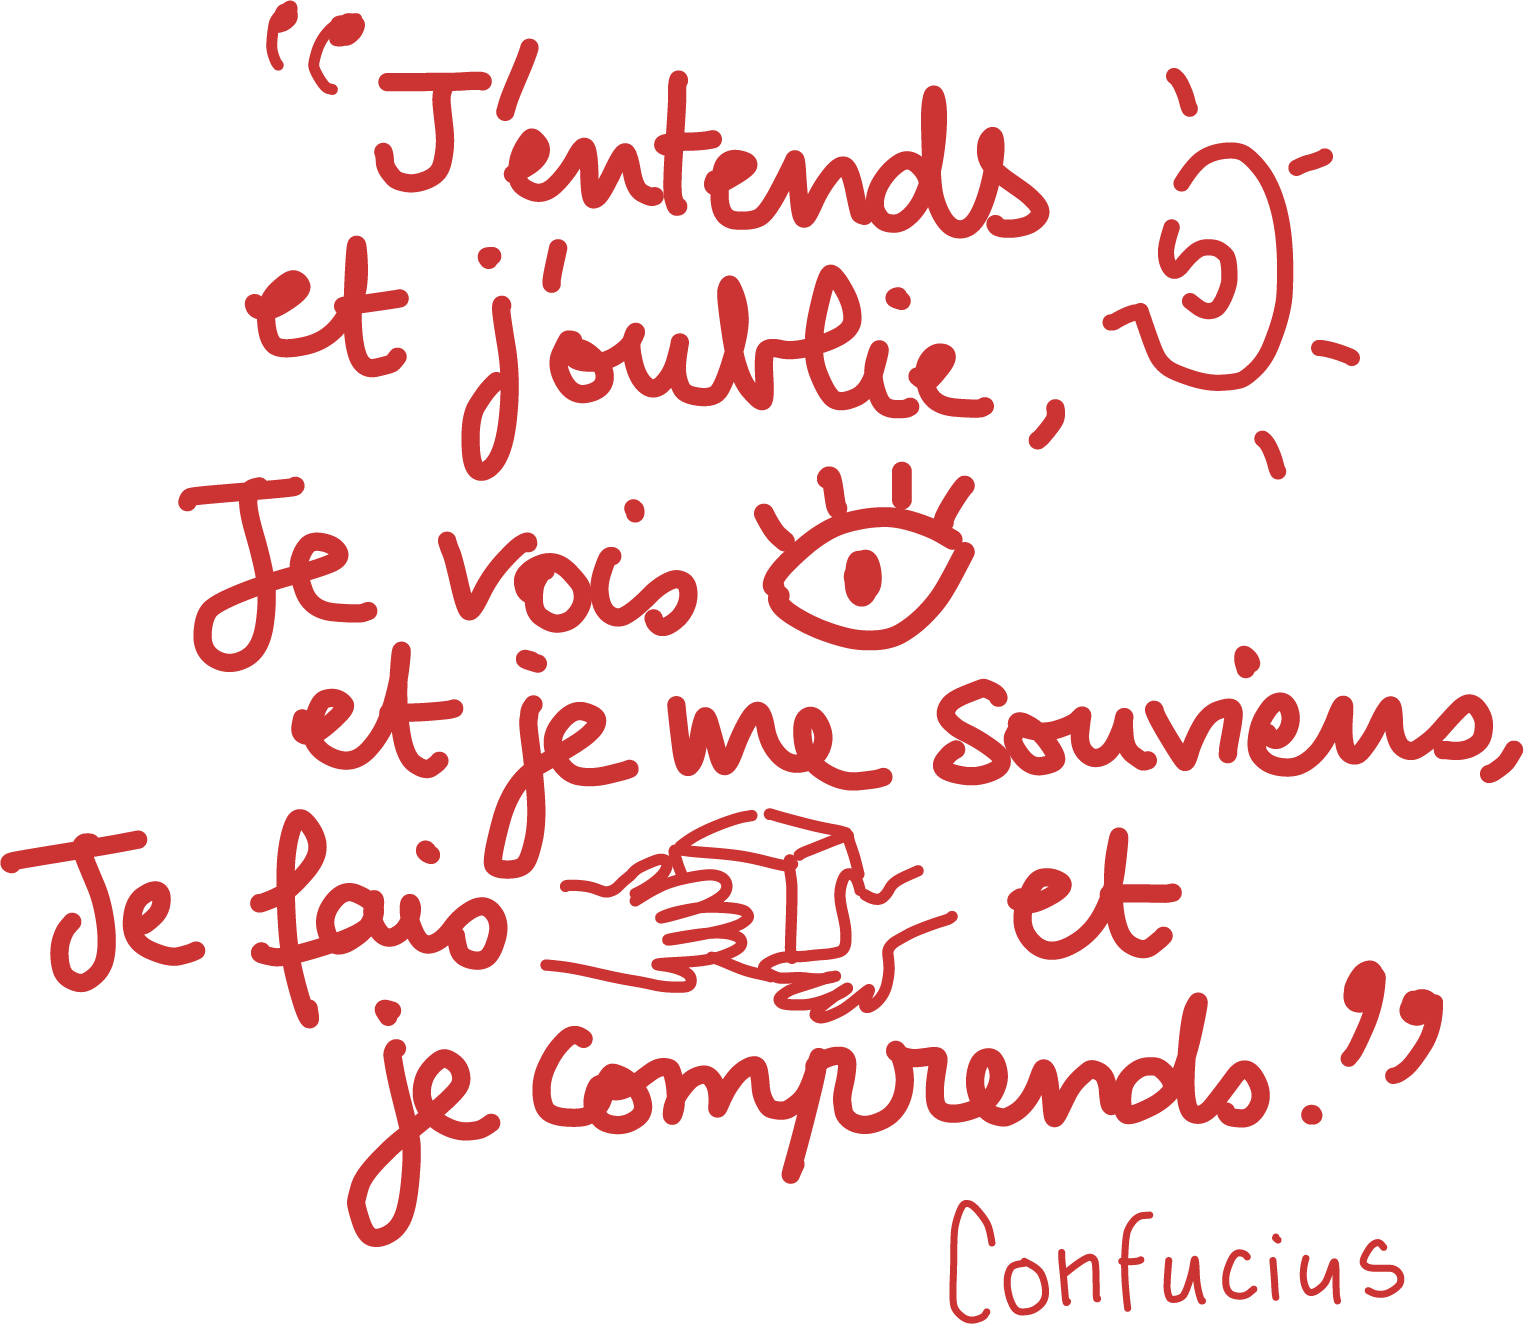 citation confucius